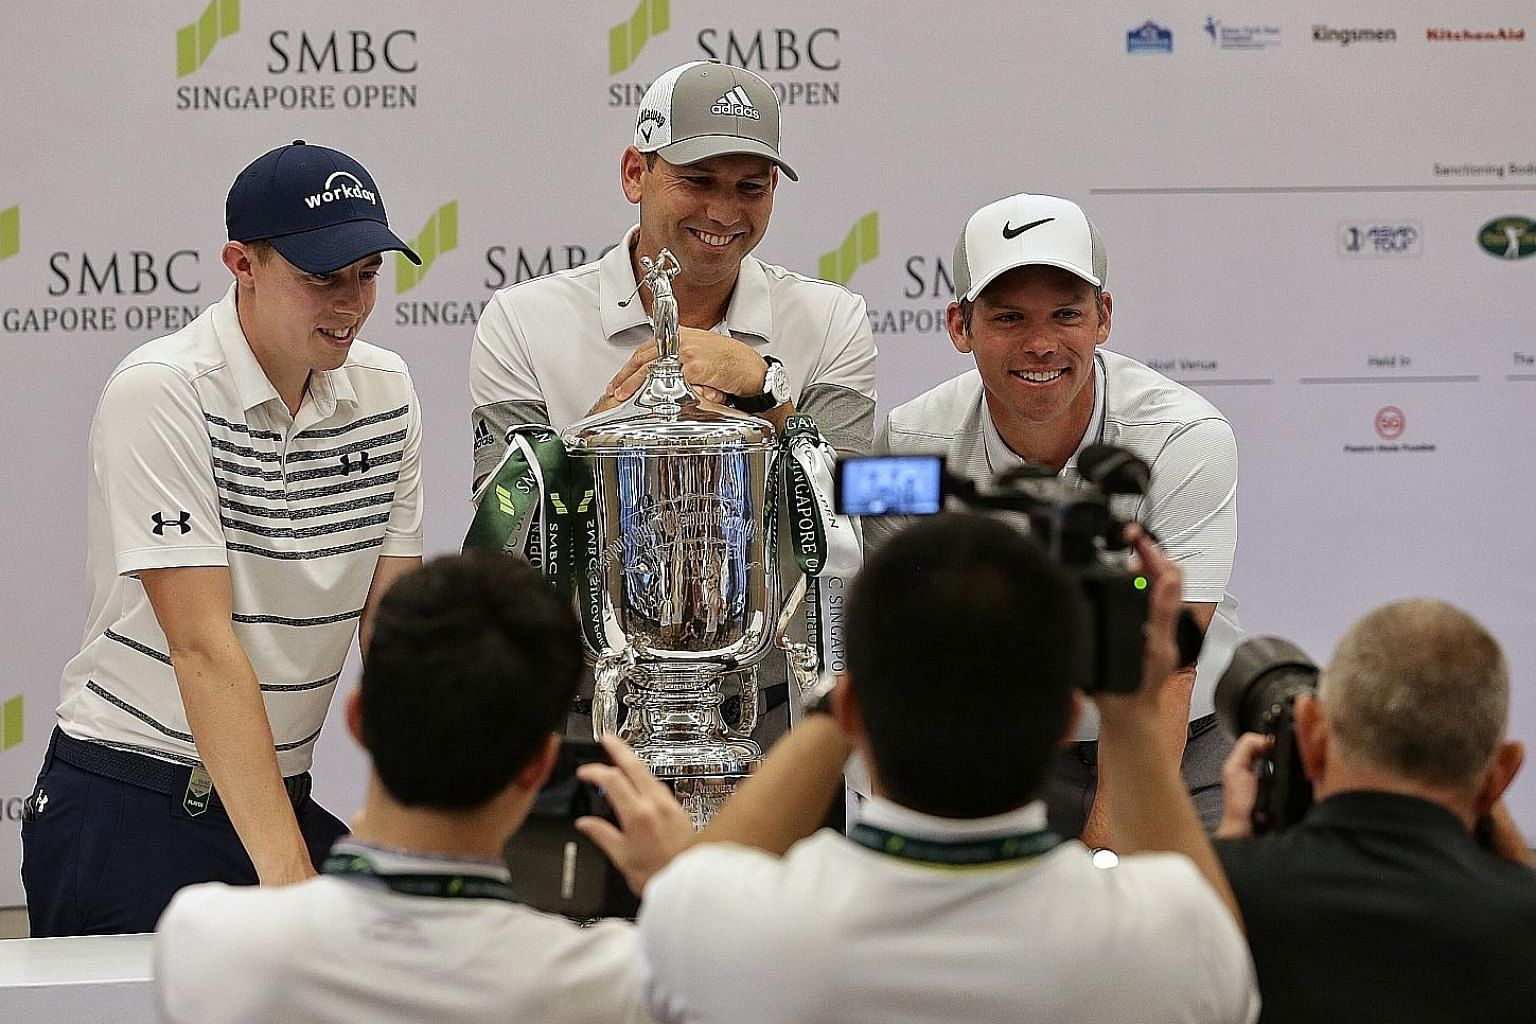 Defending champion Sergio Garcia, flanked by Englishmen Matthew Fitzpatrick (far left) and Paul Casey, playfully showing his reluctance to hand back the trophy during Tuesday's press conference. The home contingent for the SMBC Singapore Open at the